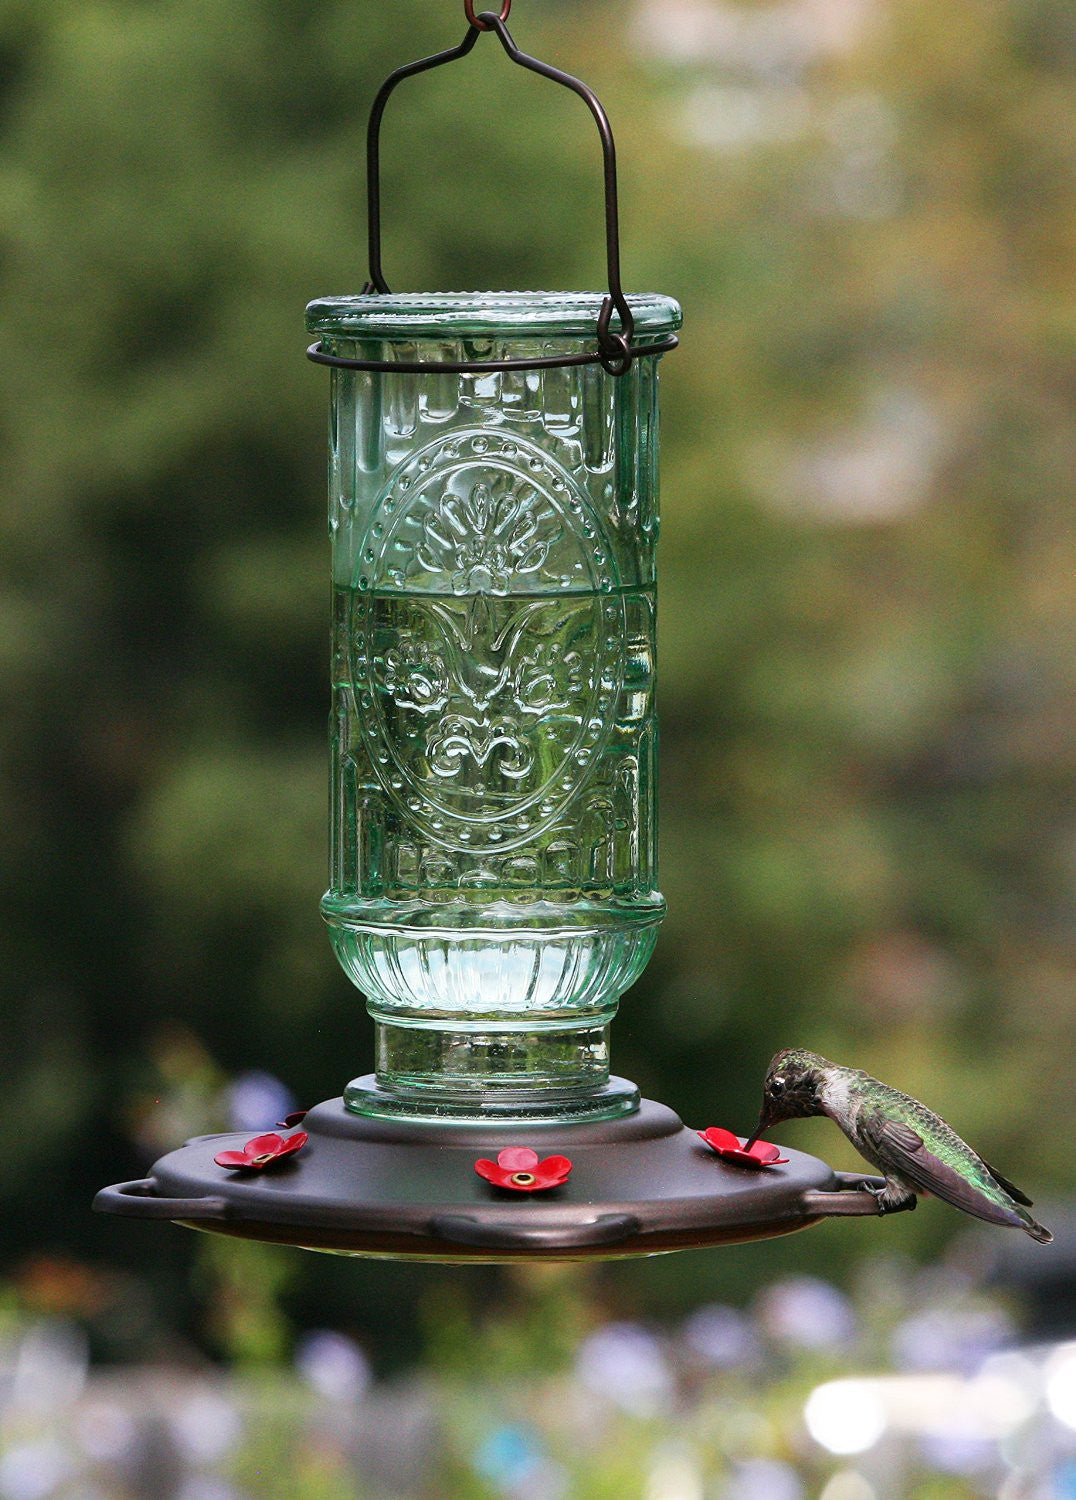 pixie handmade hummingbird shop glass seeds recycled garden humingbird supplies feeder bird feeders and